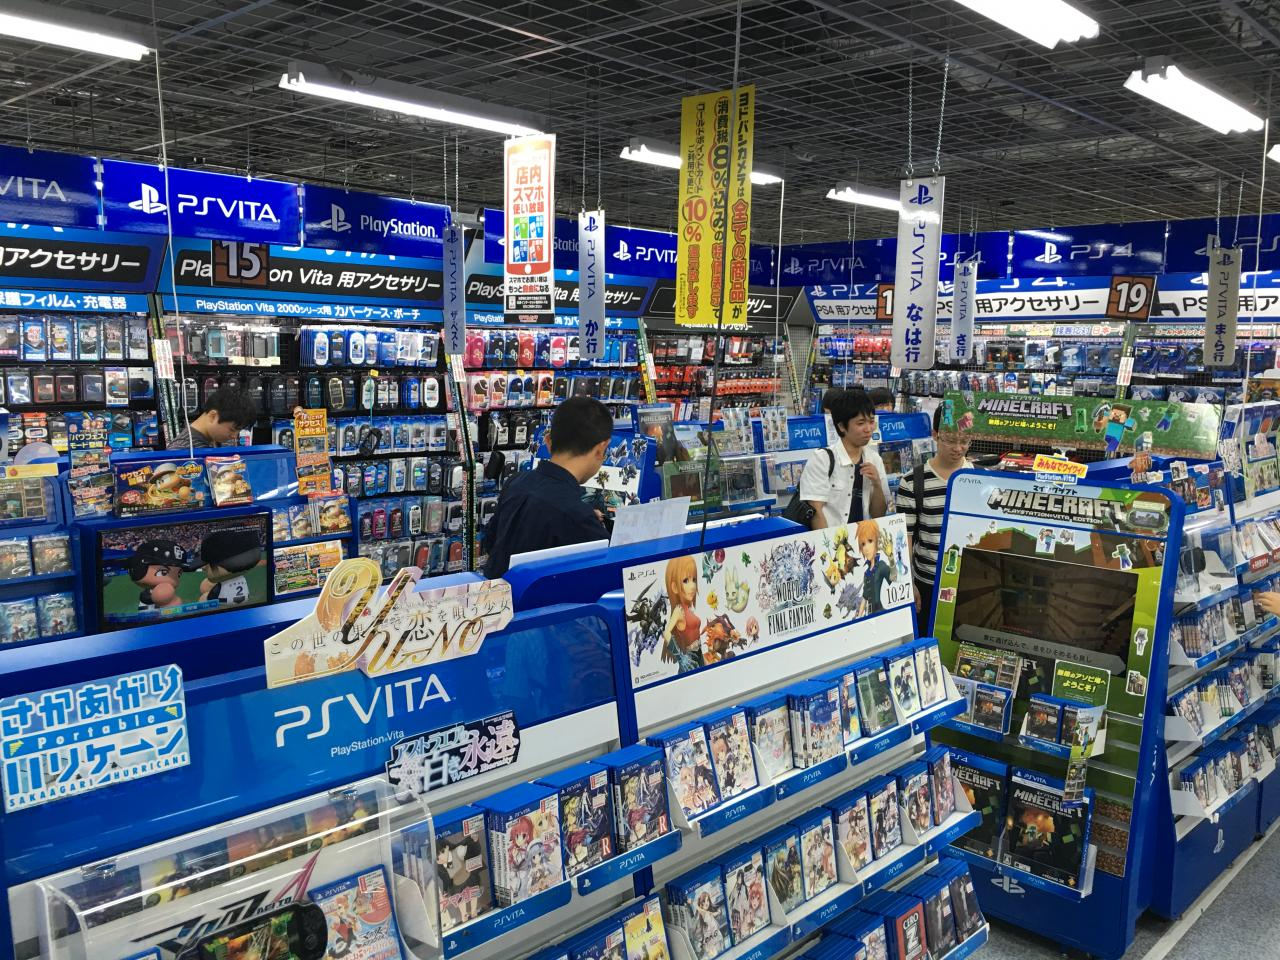 160911_28827_playstation_vita_not_dead_1280_960.JPG